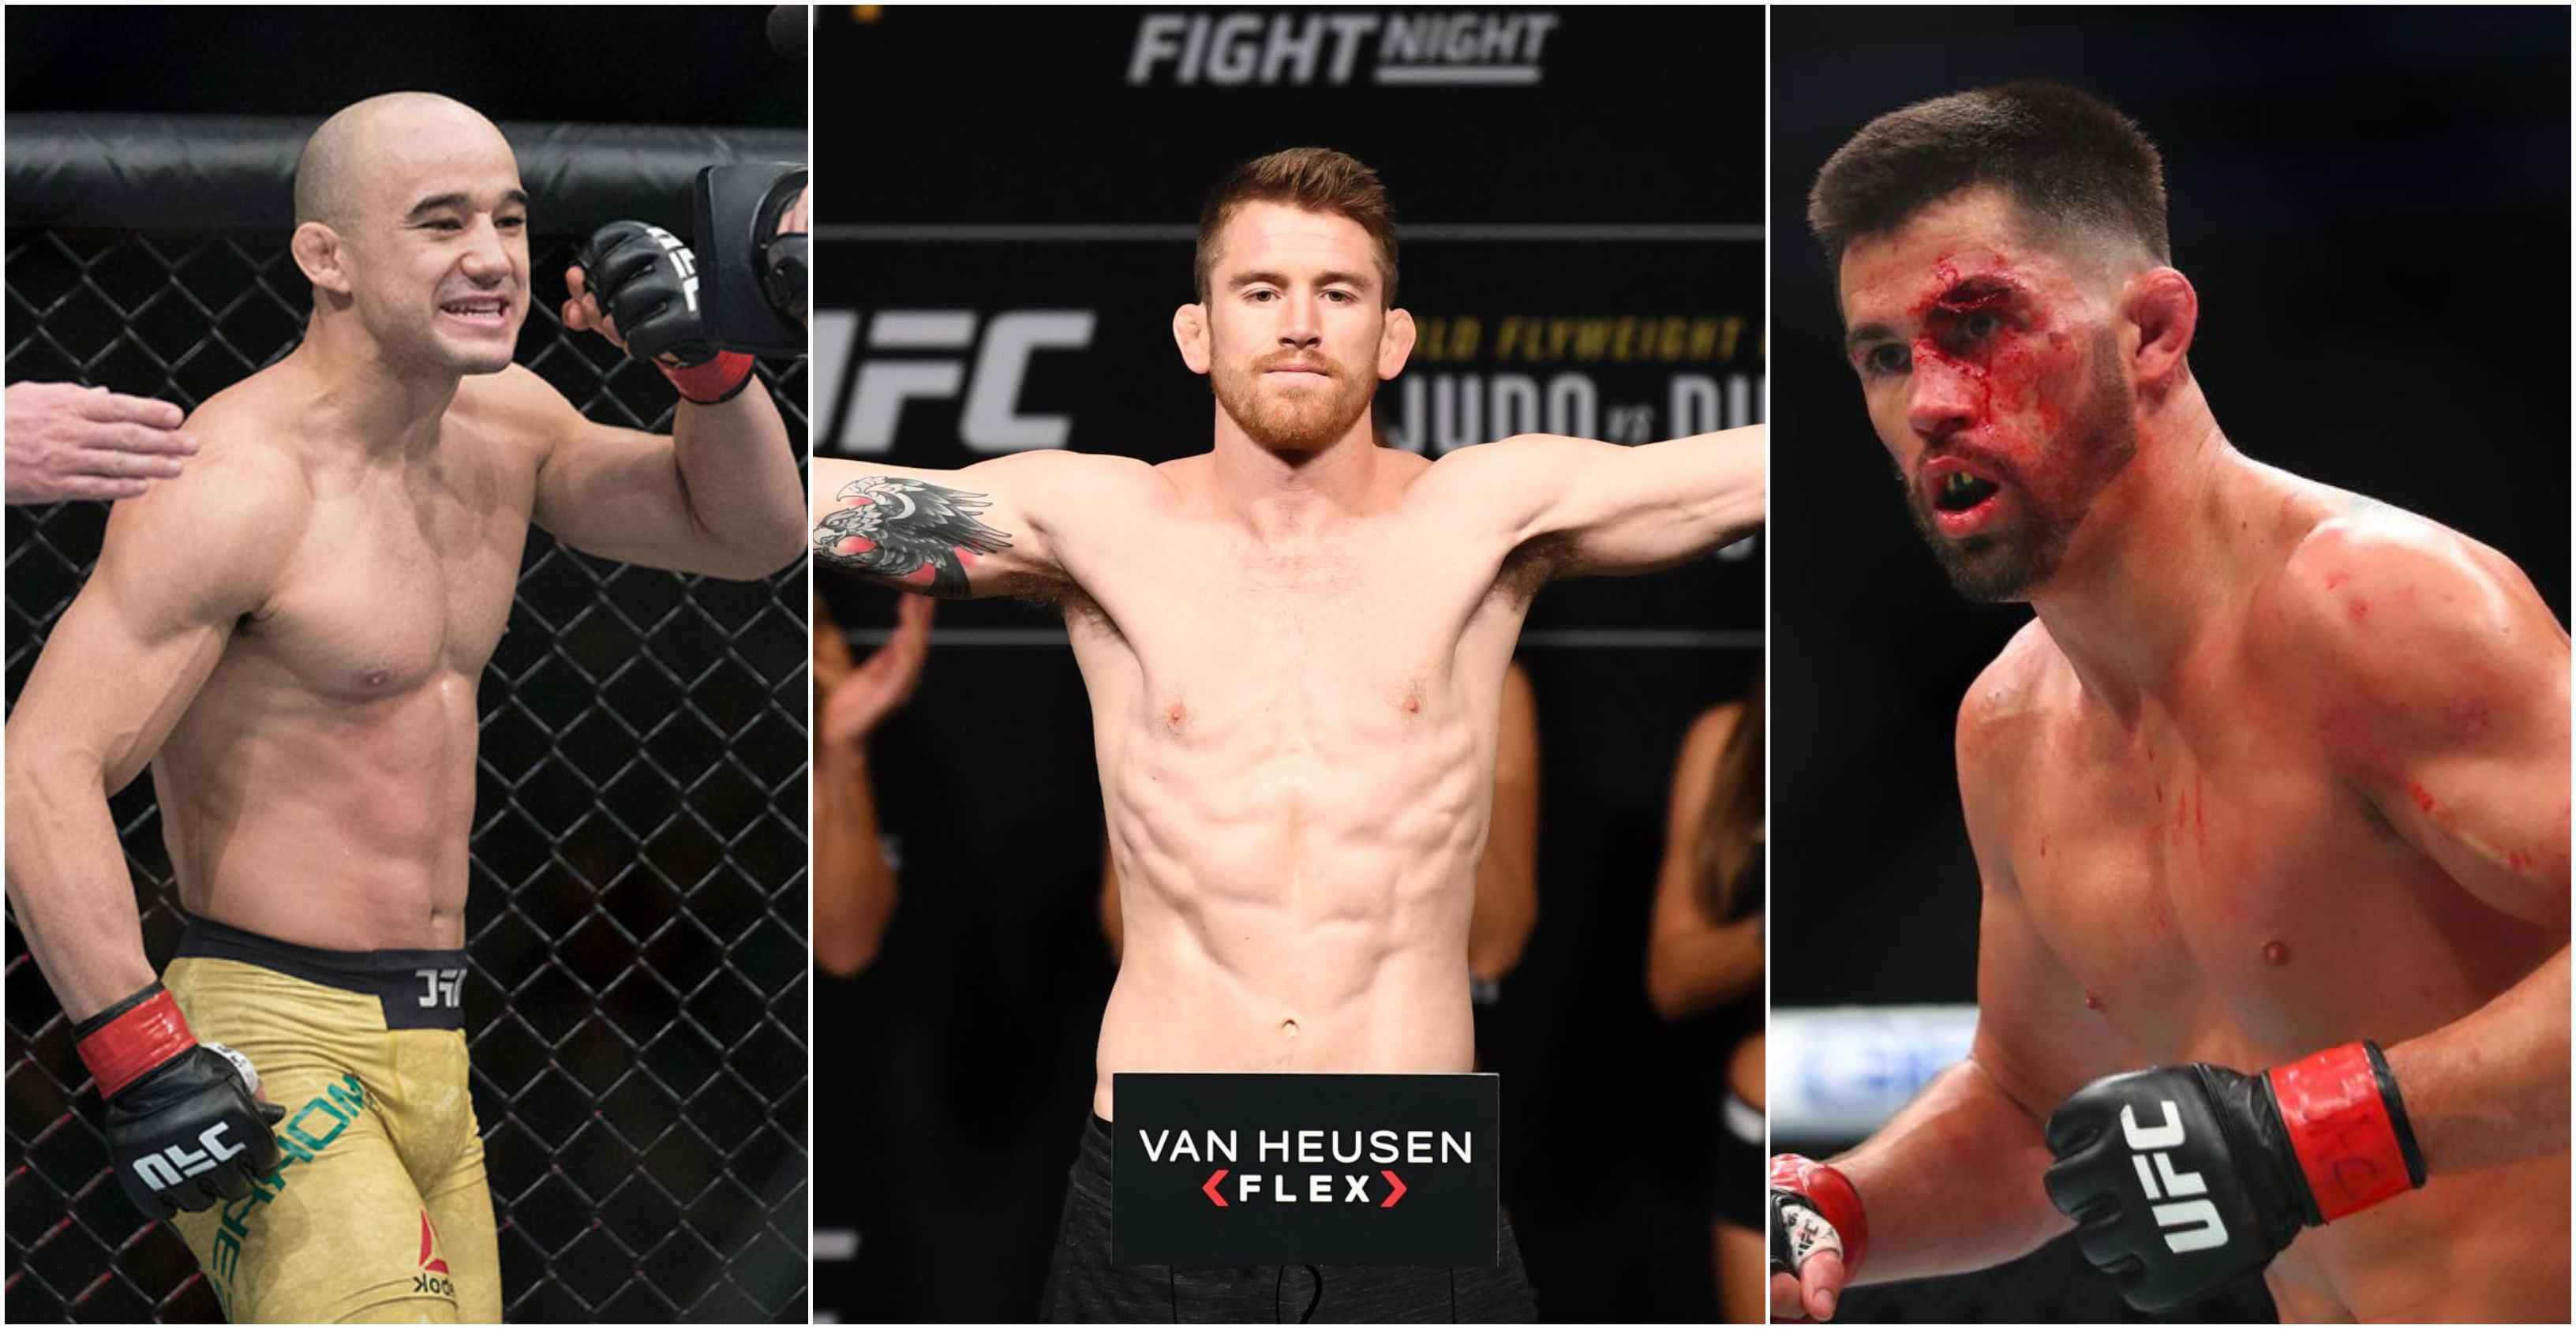 Cory Sandhagen removed from UFC Raleigh; hopes for fight against Marlon Moraes or Dominick Cruz in early 2020 - Cory